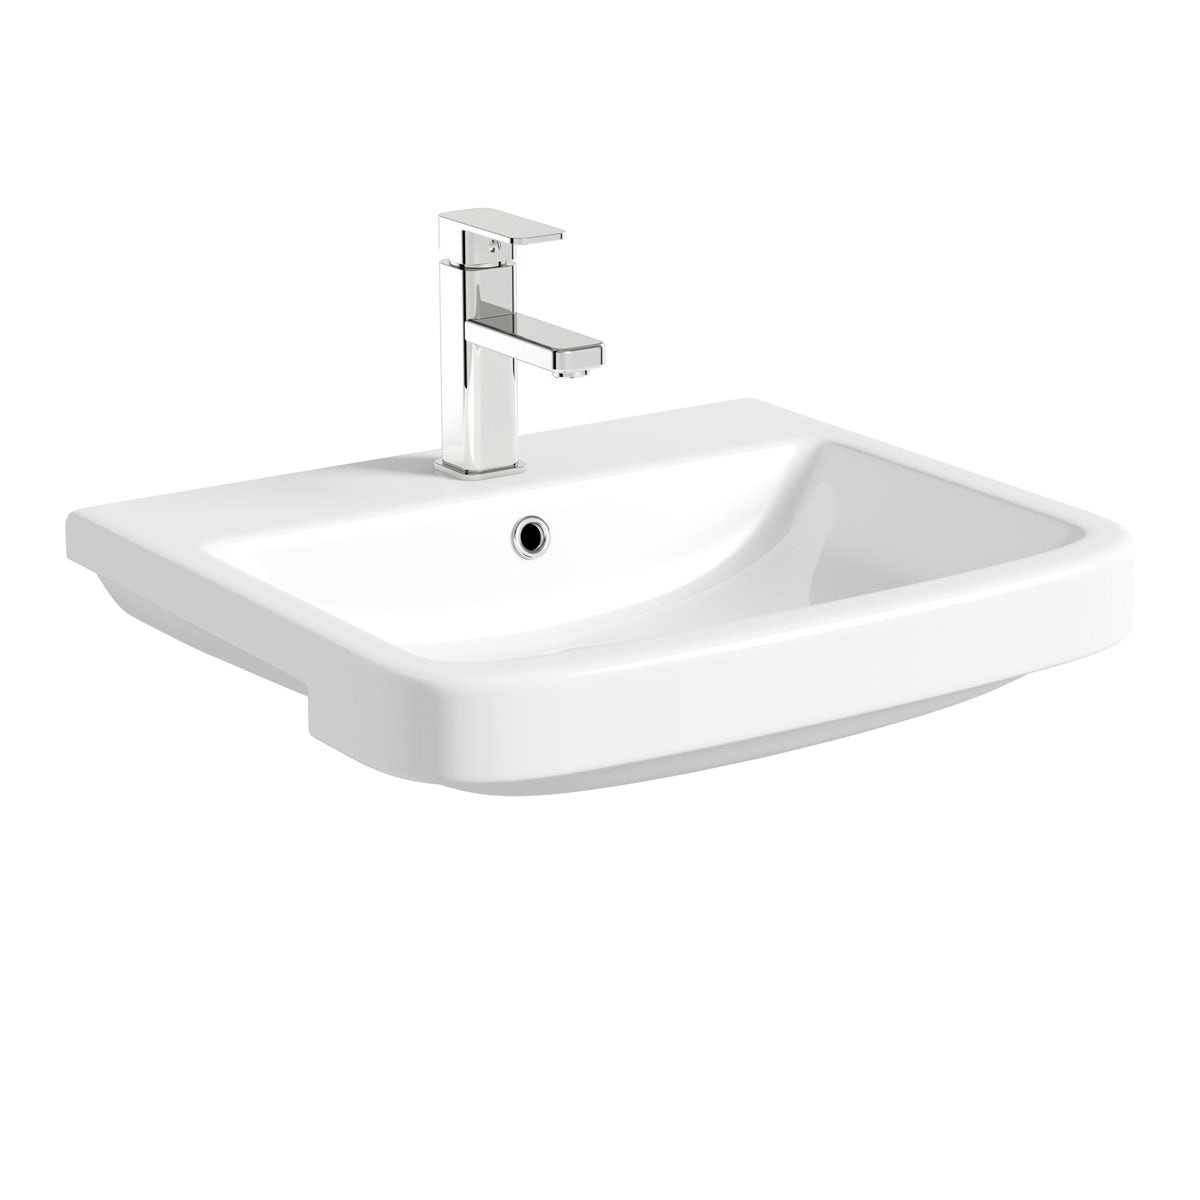 Mode Carter 1 tap hole basin semi recessed basin 550mm